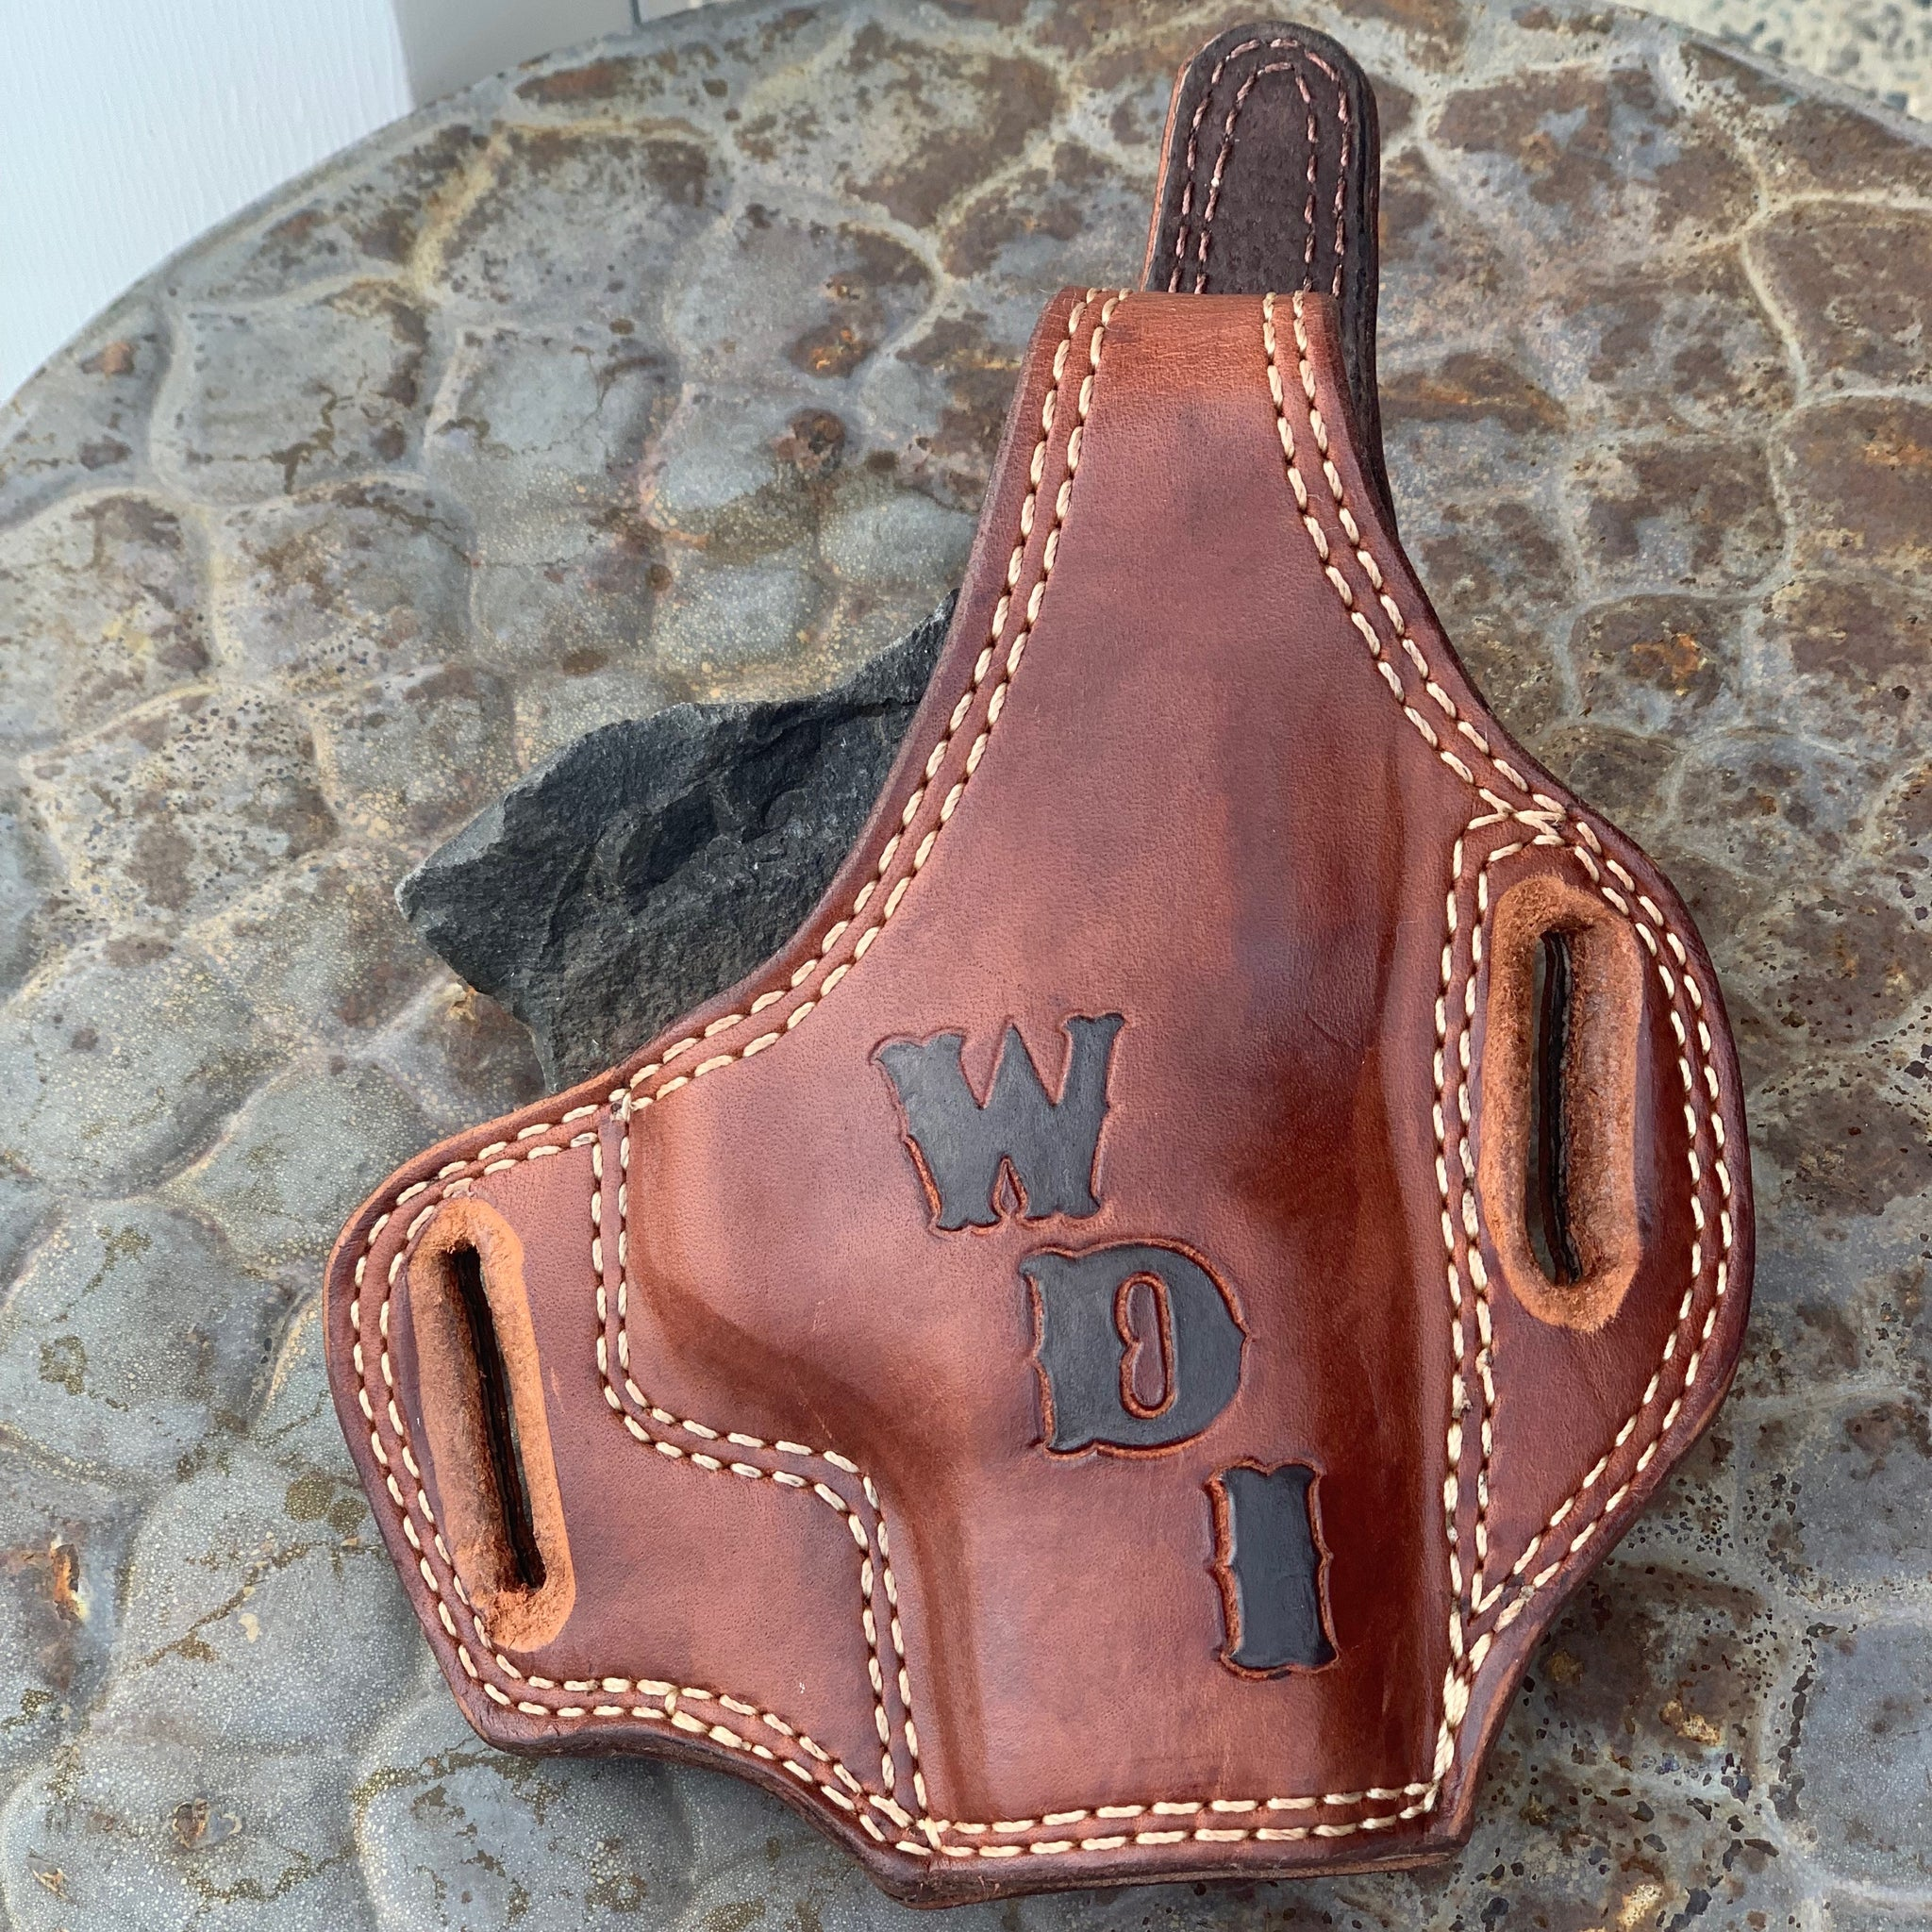 Panhandle Red Leather Holster. Bridle Leather, OWB Holster for Conceal Carry. Made in the USA